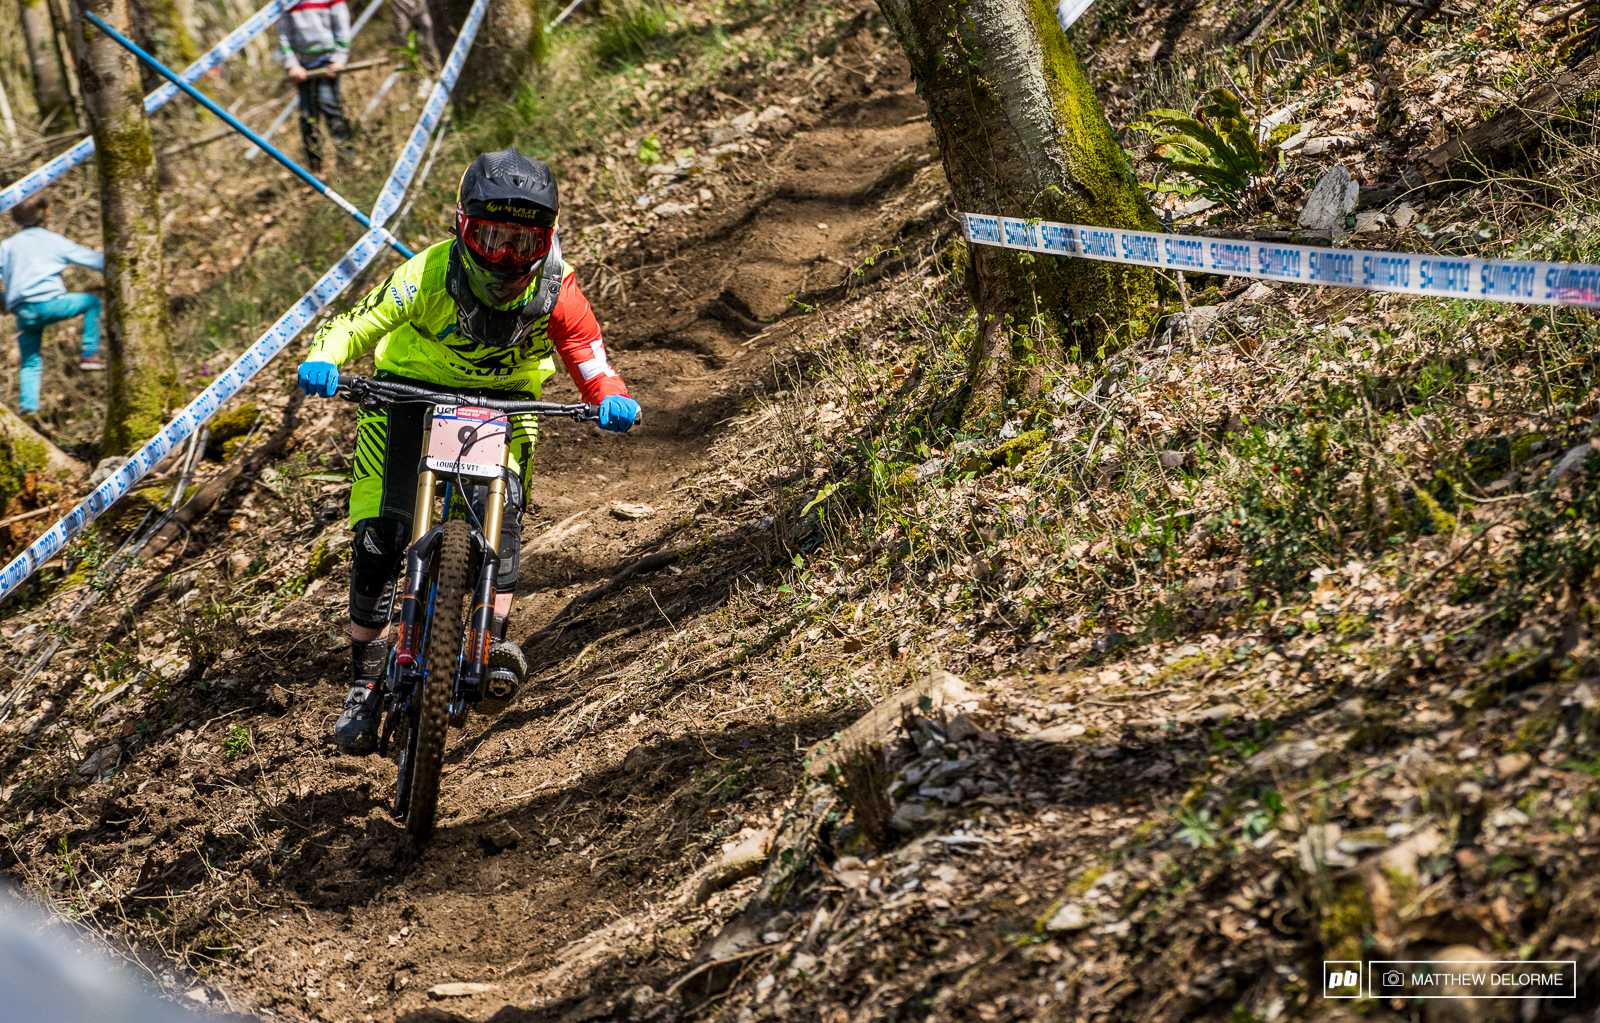 Emilie Siegenthaler had a solid ride to fifth place today.